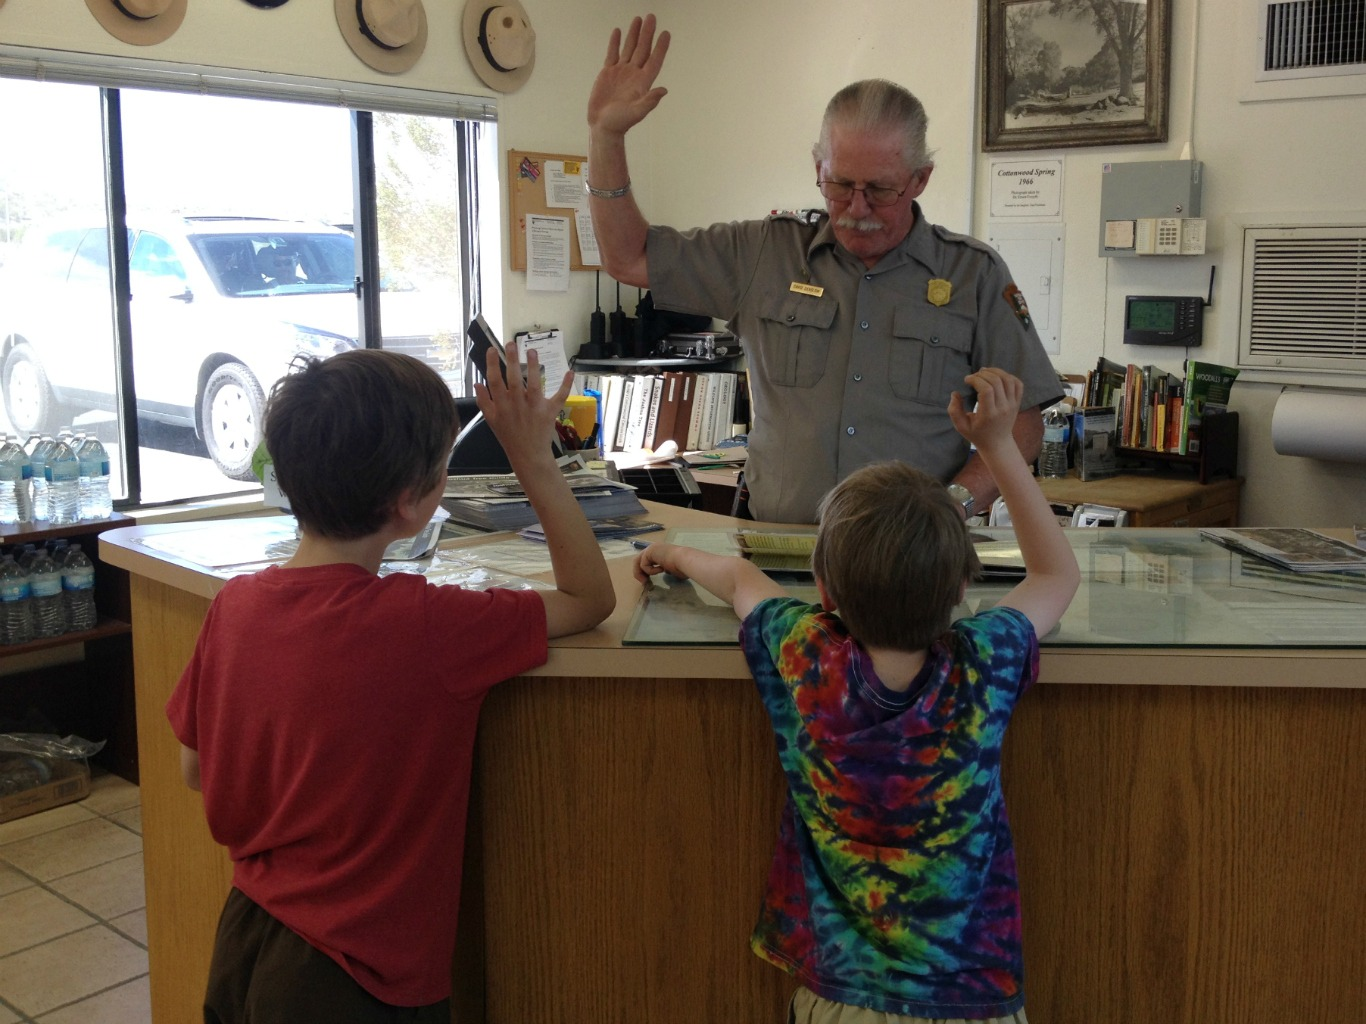 Taking the Junior Ranger oath at Joshua Tree National Park